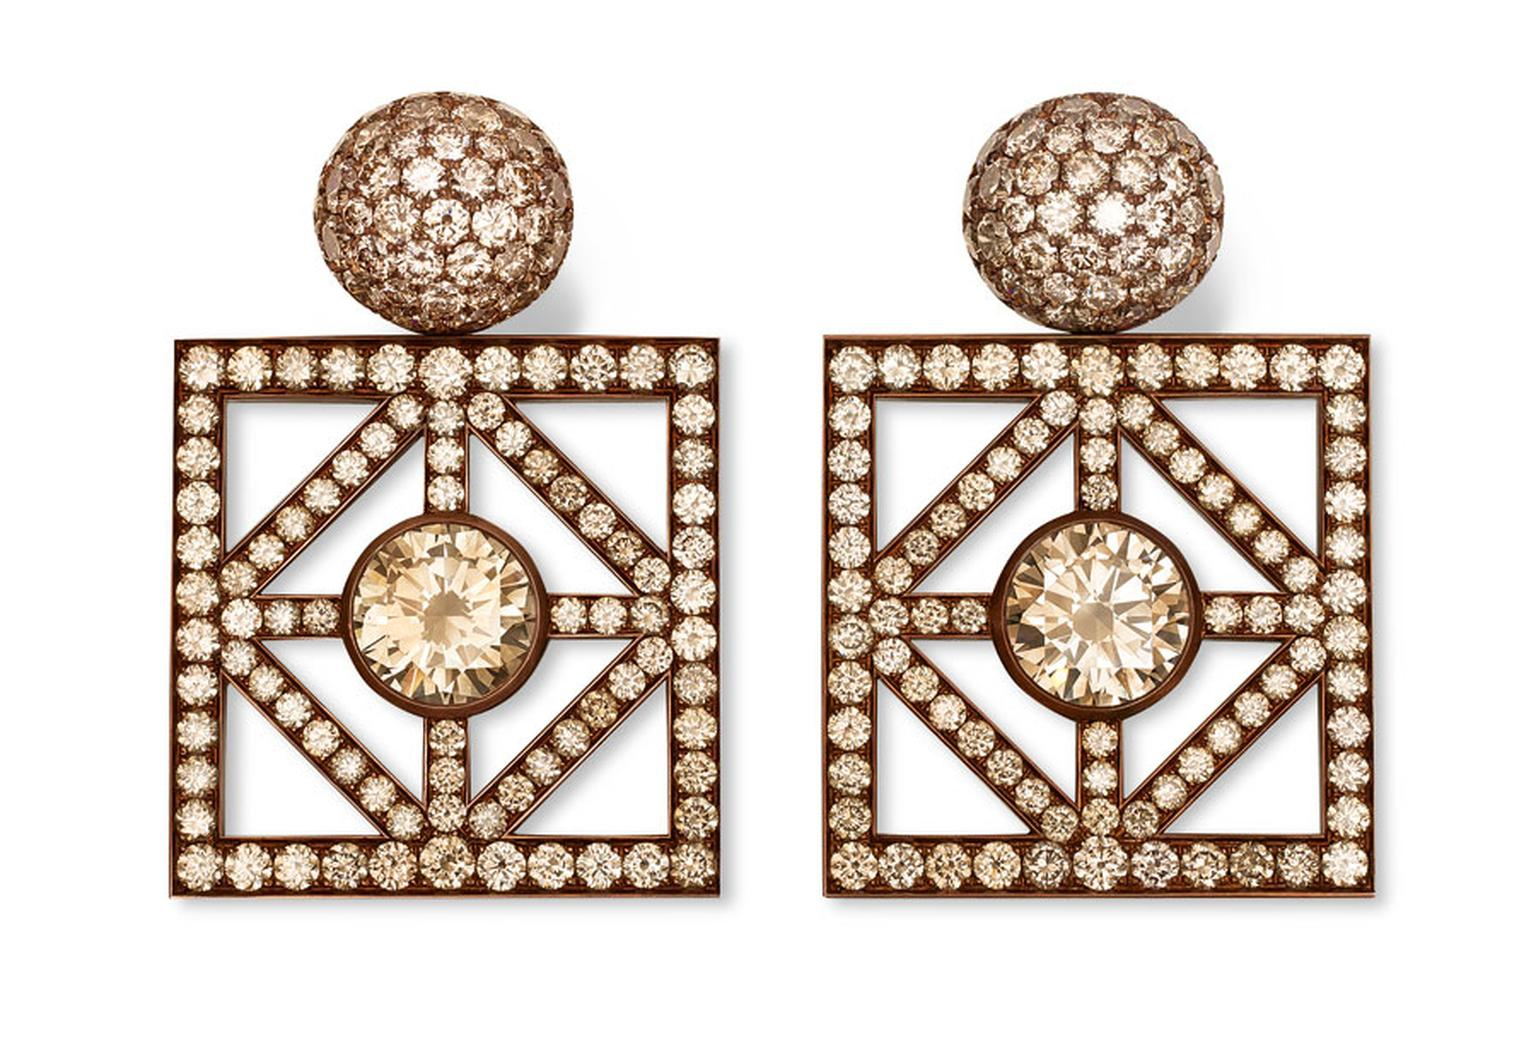 Hemmerle-Earrings-Copper-white-gold-2-diamonds-light-brown-and-diamonds-light-brown-0621.jpg